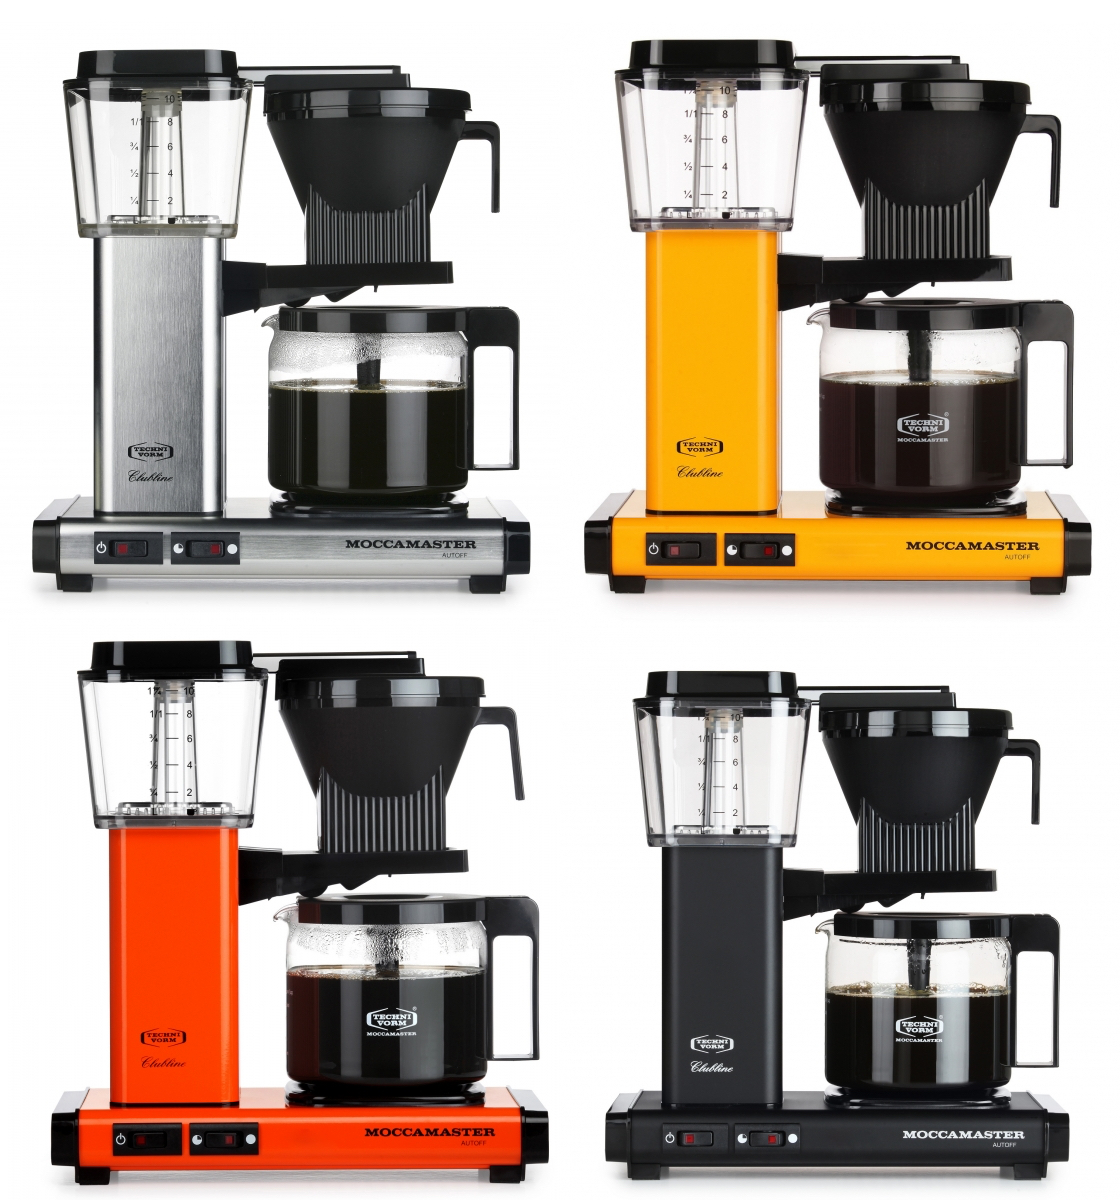 High End Office Coffee Maker : 19 Select High-End Coffee Makers for the Perfect Cup of Joe